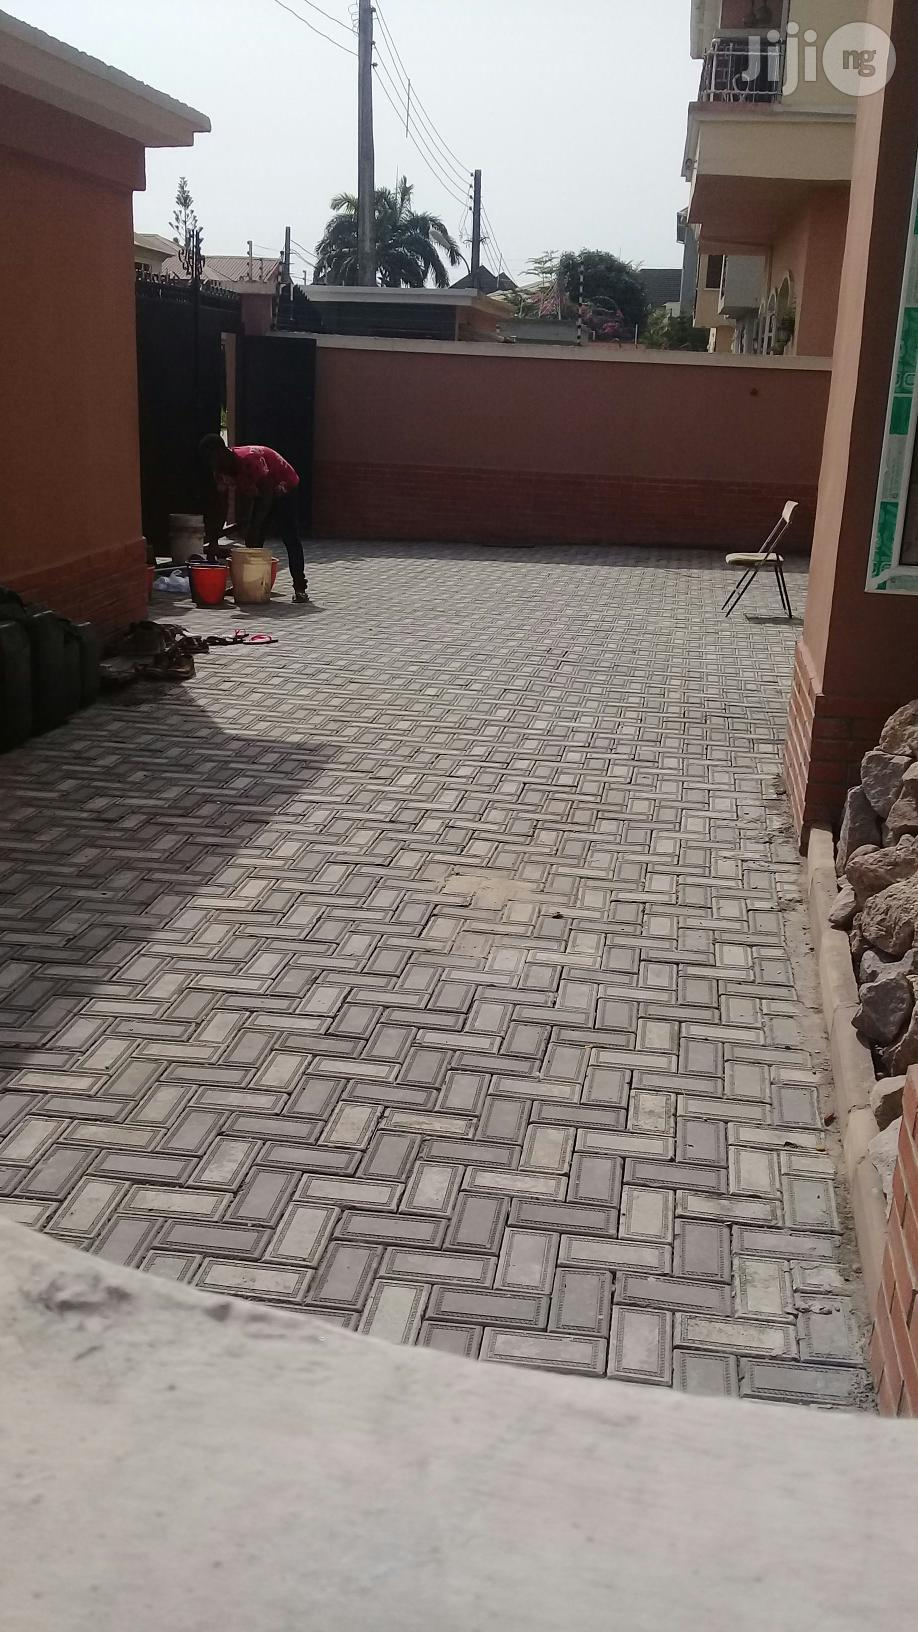 4 Bedrooms Duplex for Rent Lekki | Houses & Apartments For Rent for sale in Lekki, Lagos State, Nigeria